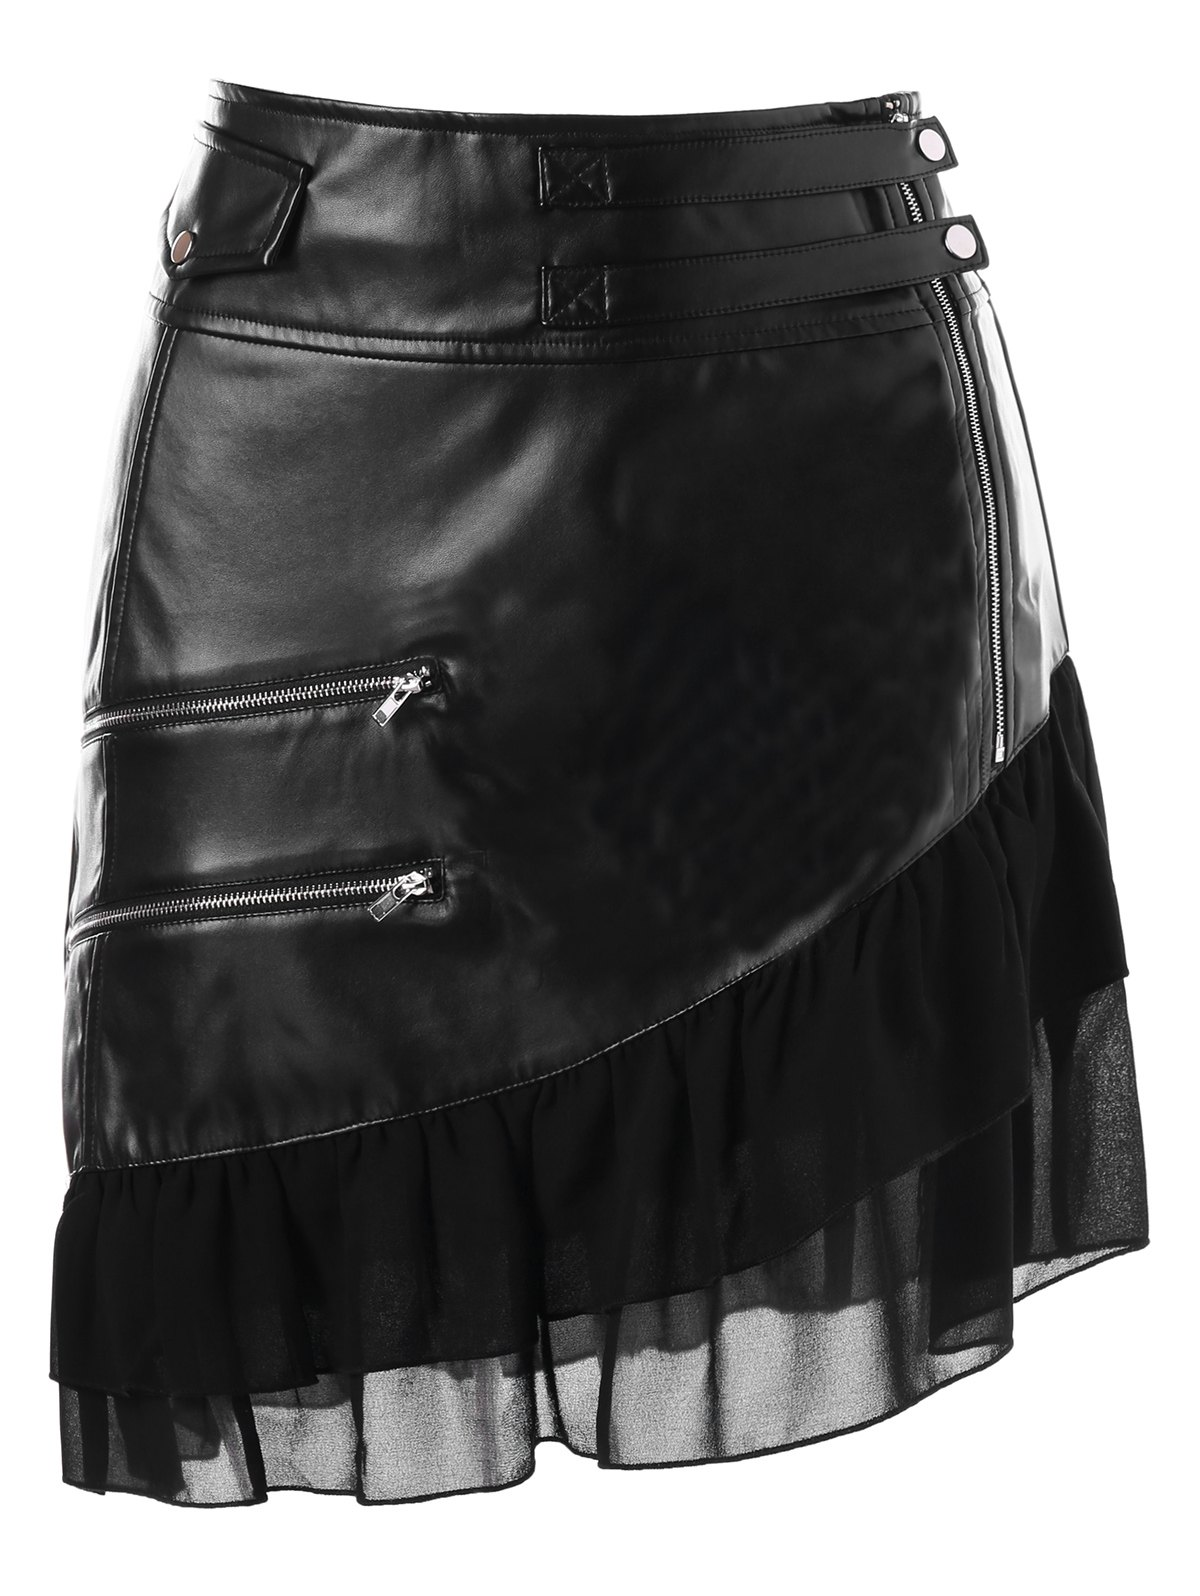 Faux Leather Zipper Flounce Panel Skirt - BLACK L